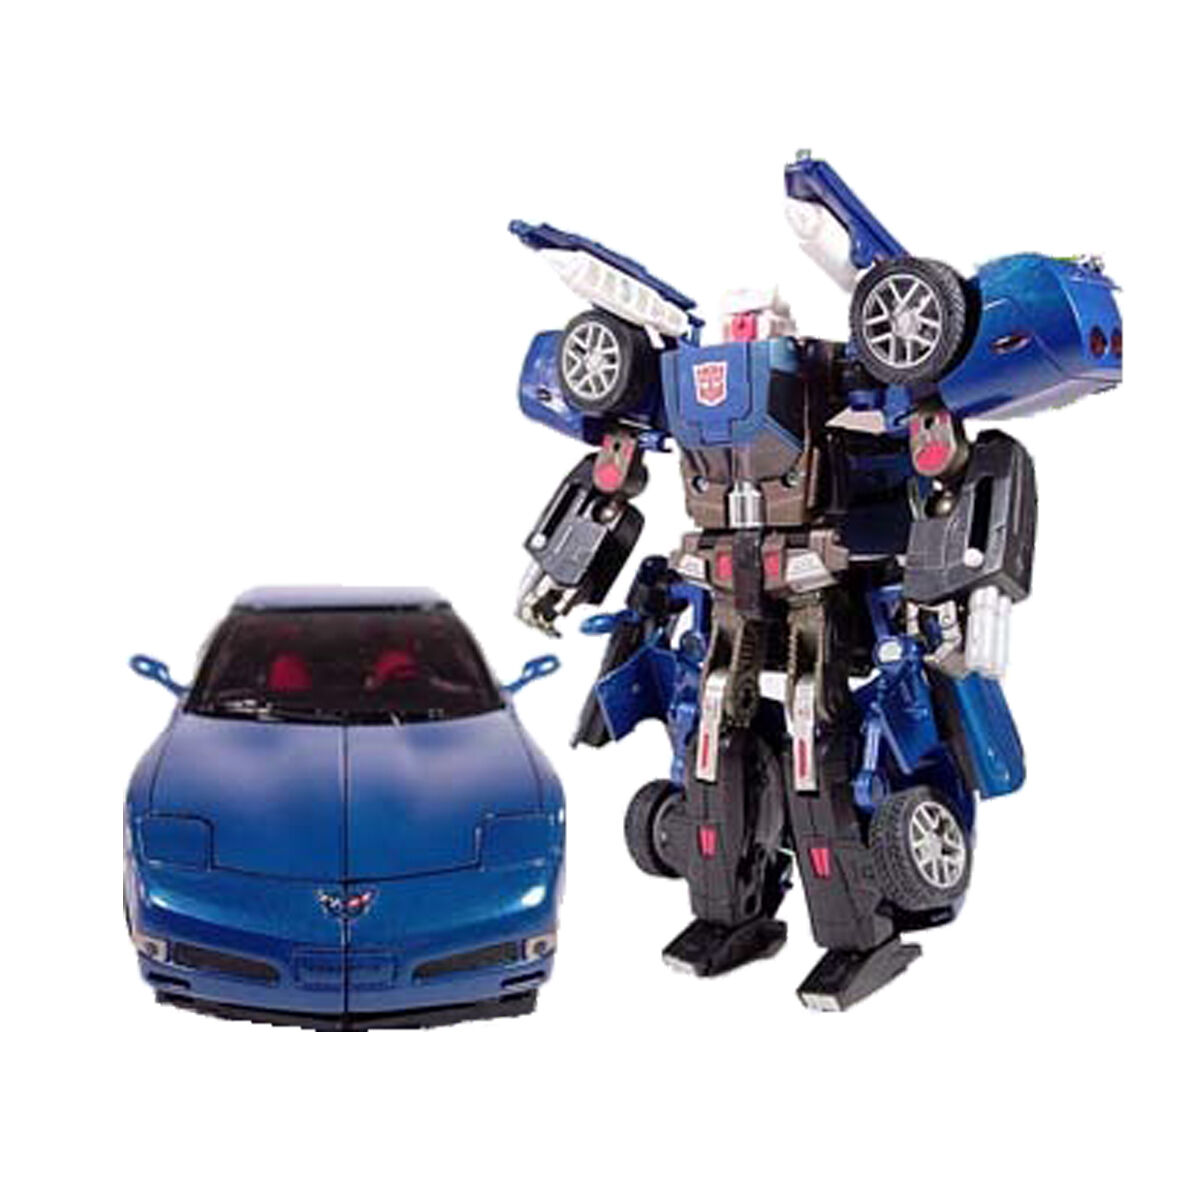 Binaltech BT-06 Pistas Corvette blue carrocería de metal - Transformers